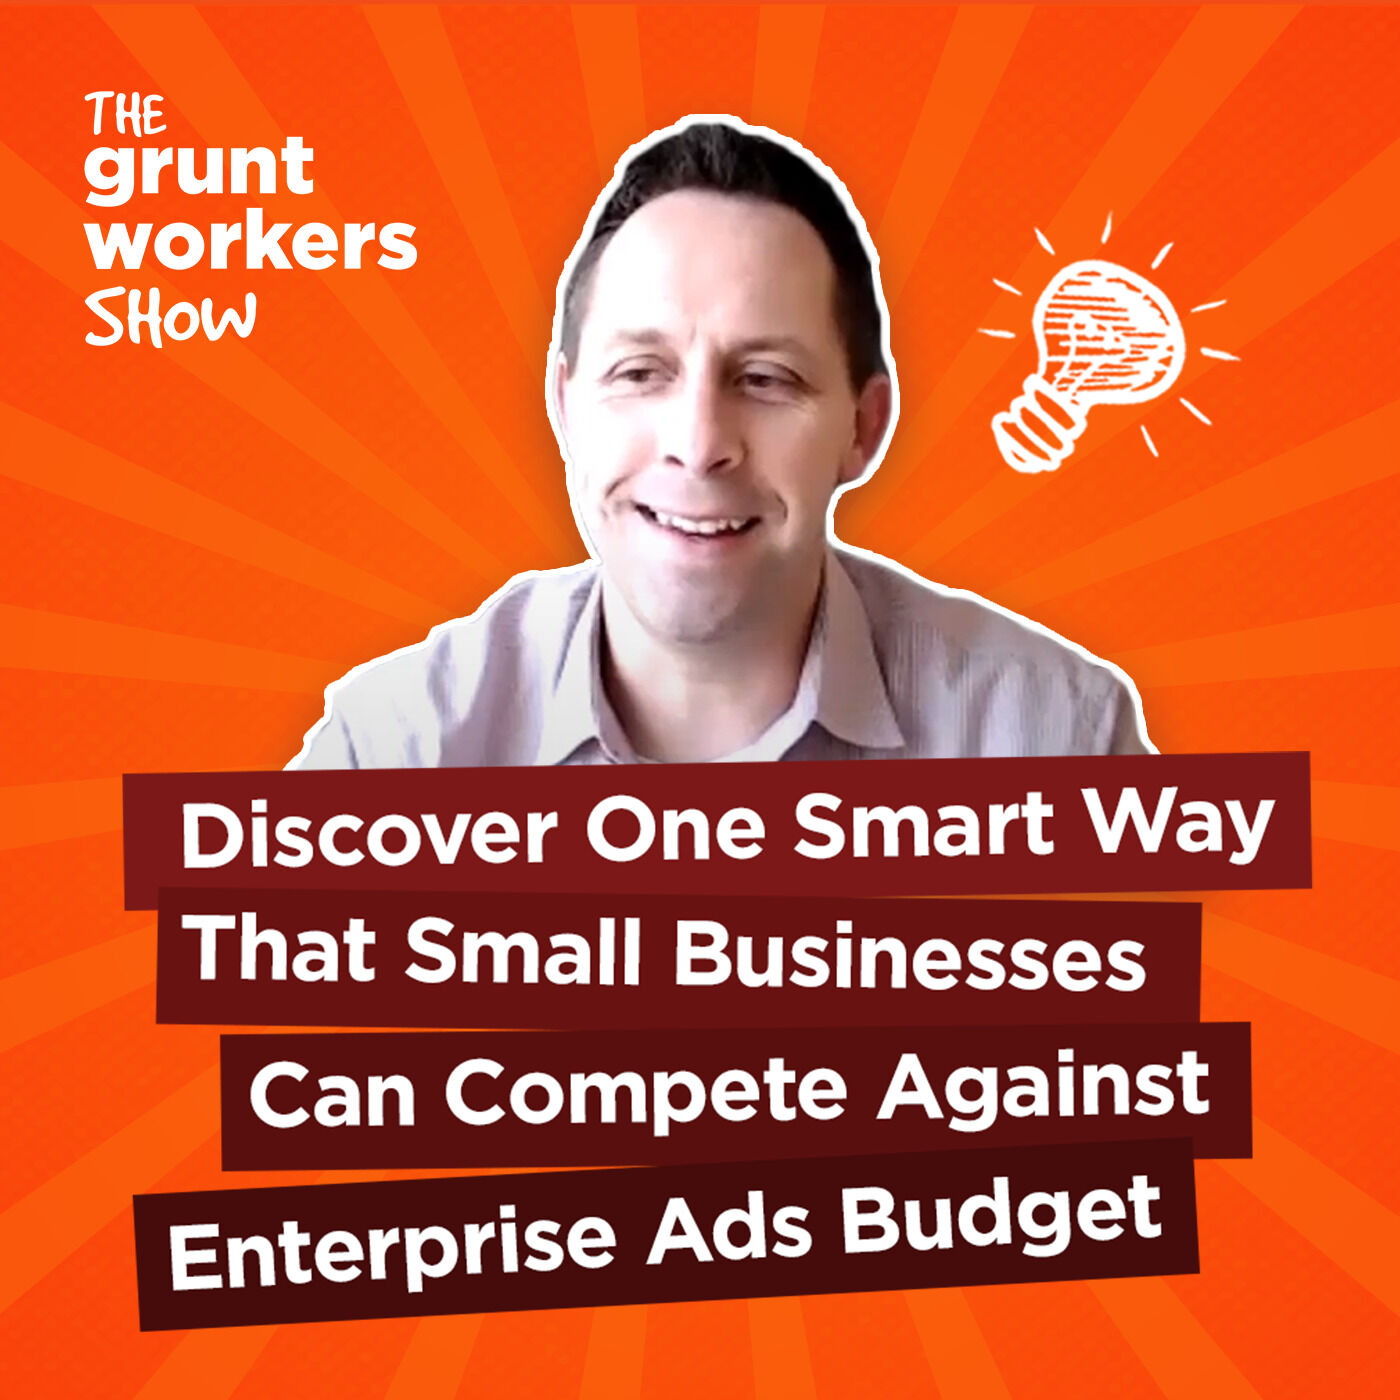 Discover One Smart Way That Small Businesses Can Compete Against Enterprise Ad Budgets